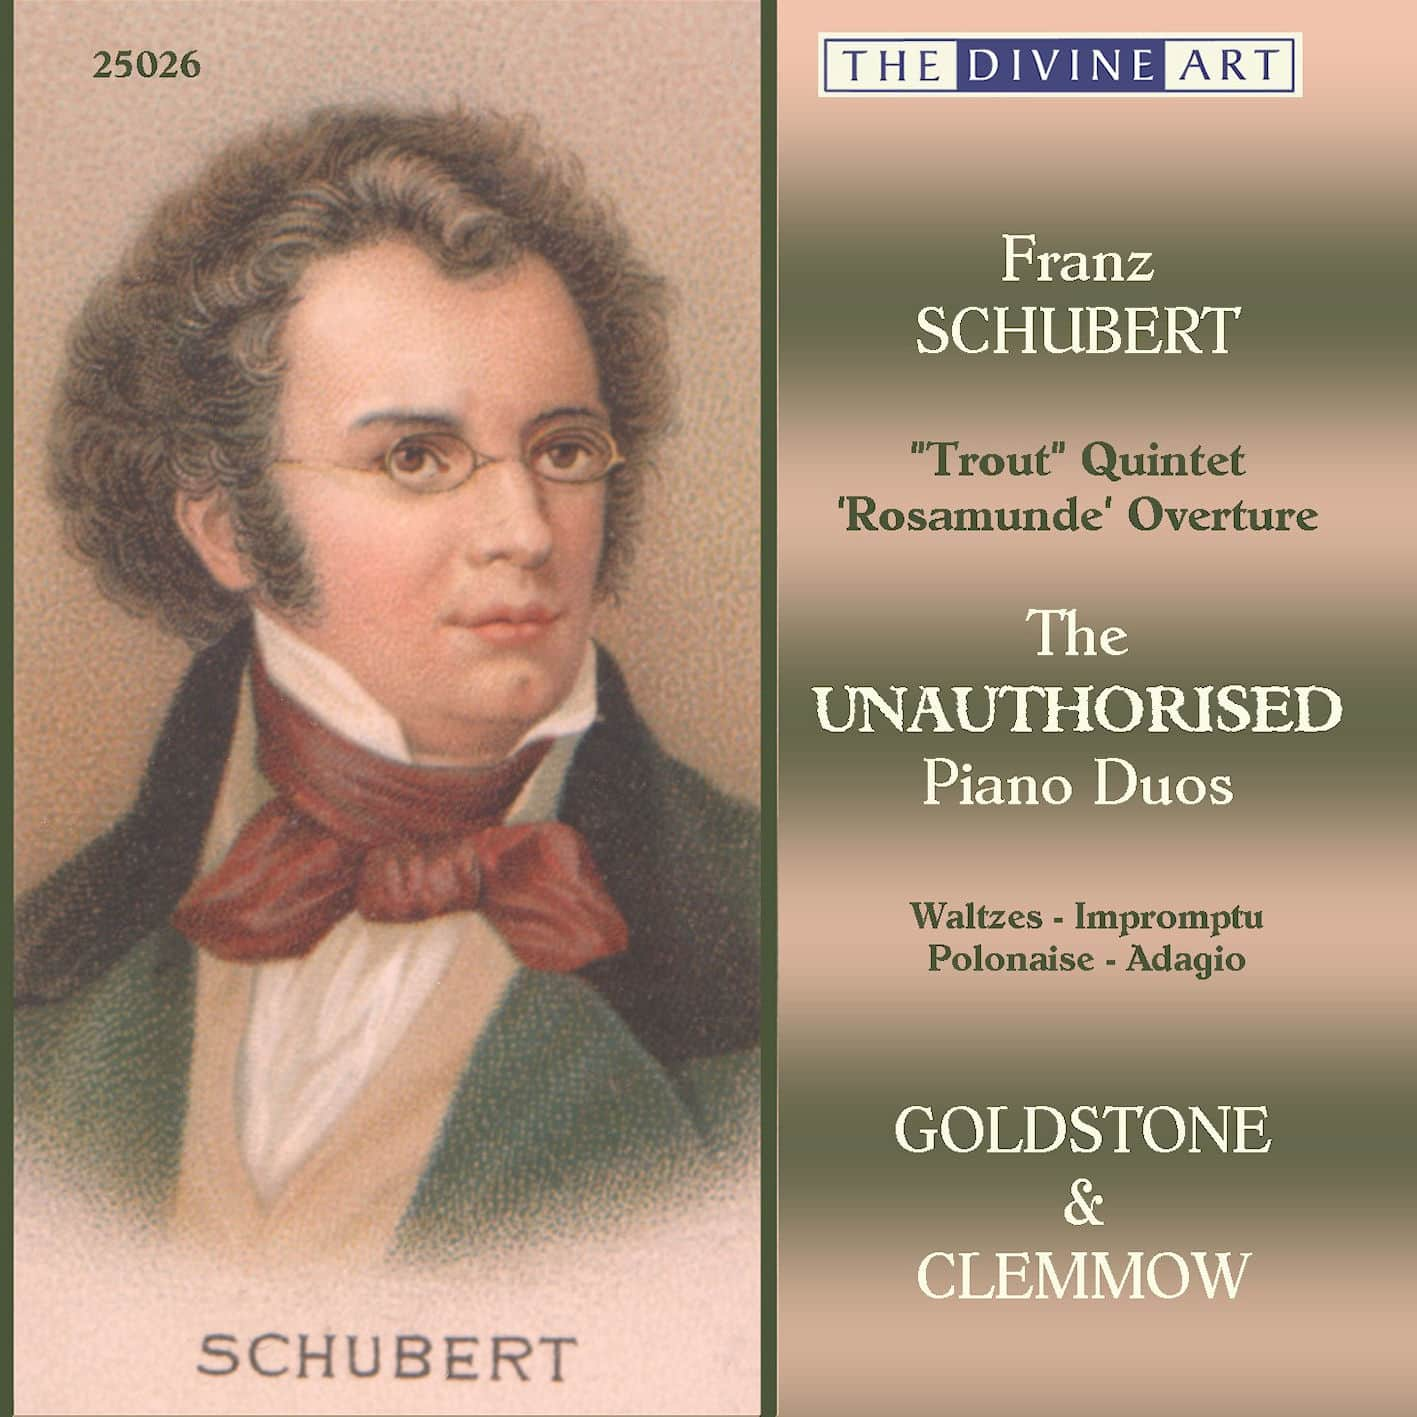 Schubert - The Unauthorised Piano Duos